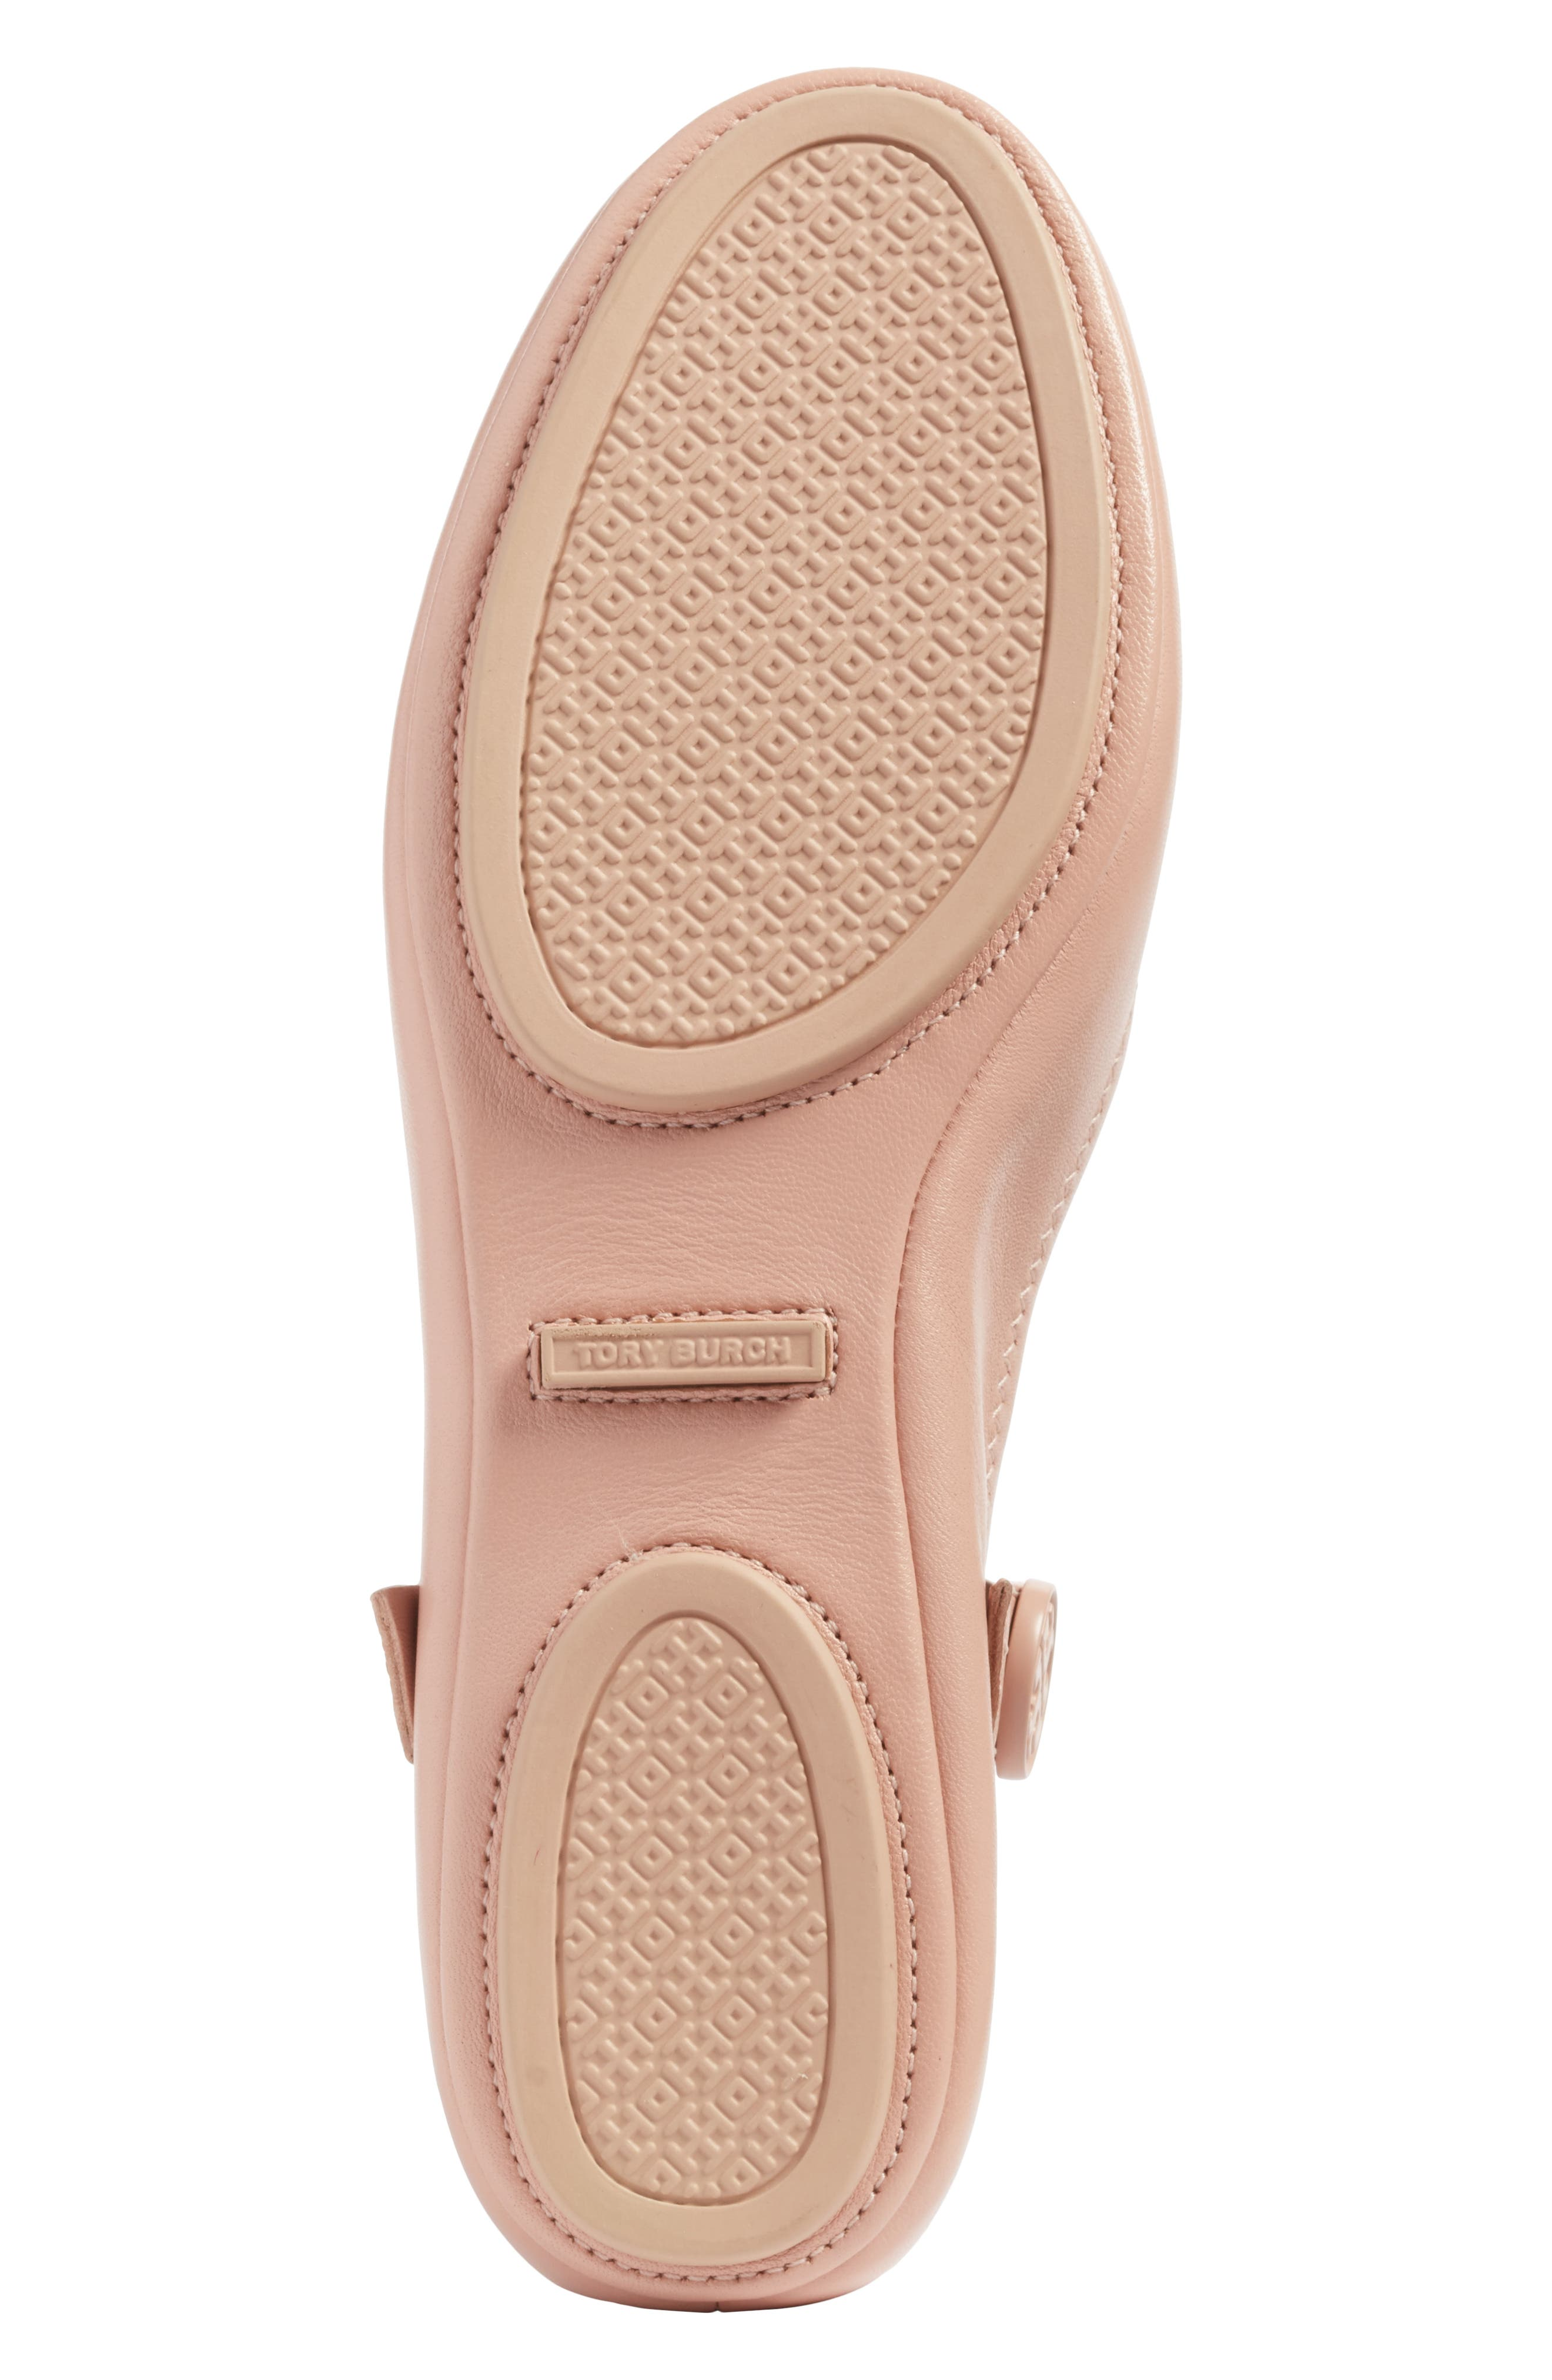 Minnie Embellished Convertible Strap Ballet Flat,                             Alternate thumbnail 21, color,